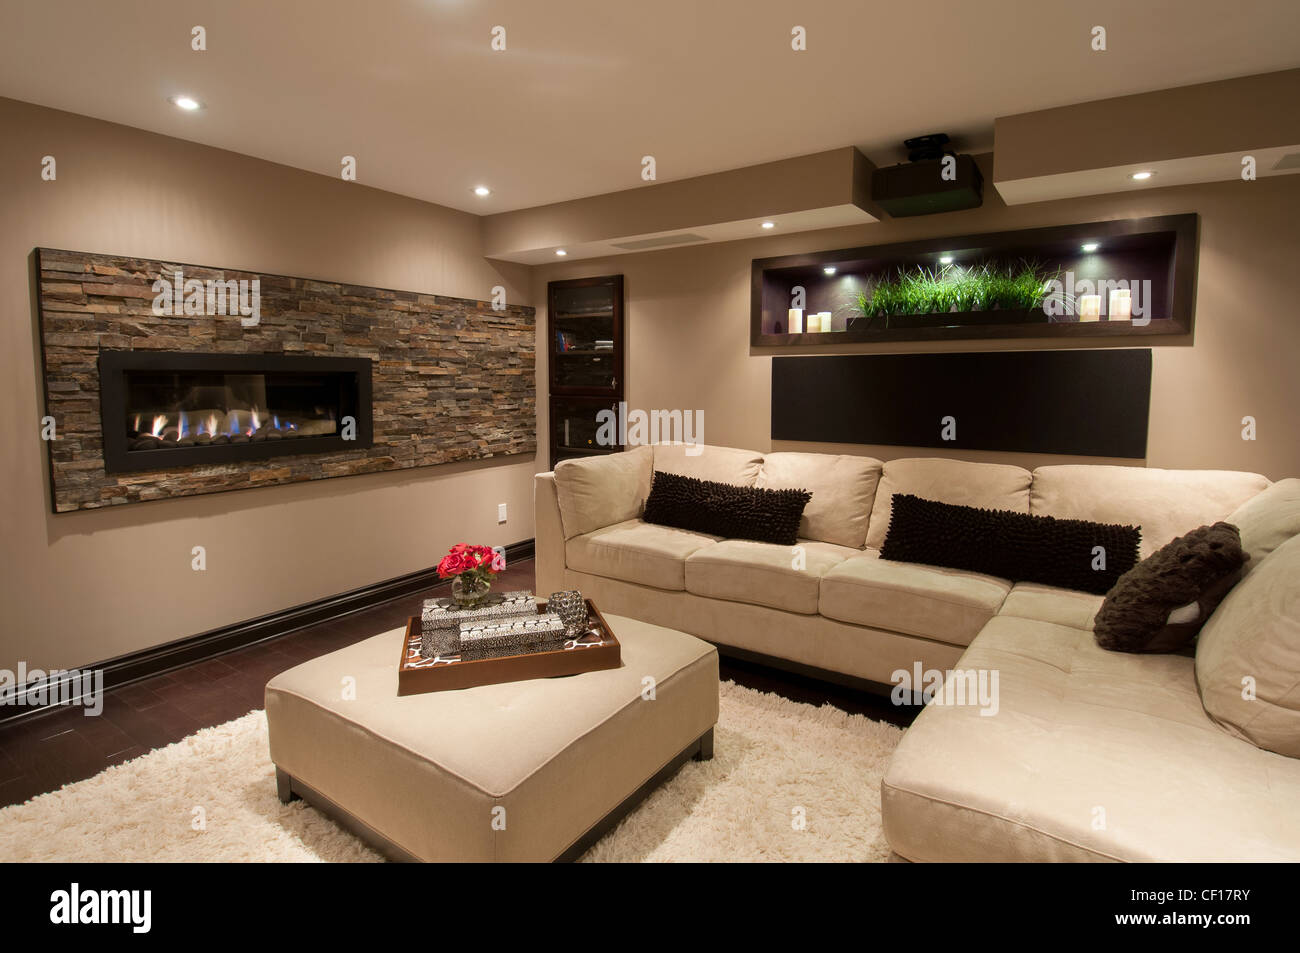 Basement In Luxury Residential Home With Sofa And Gas